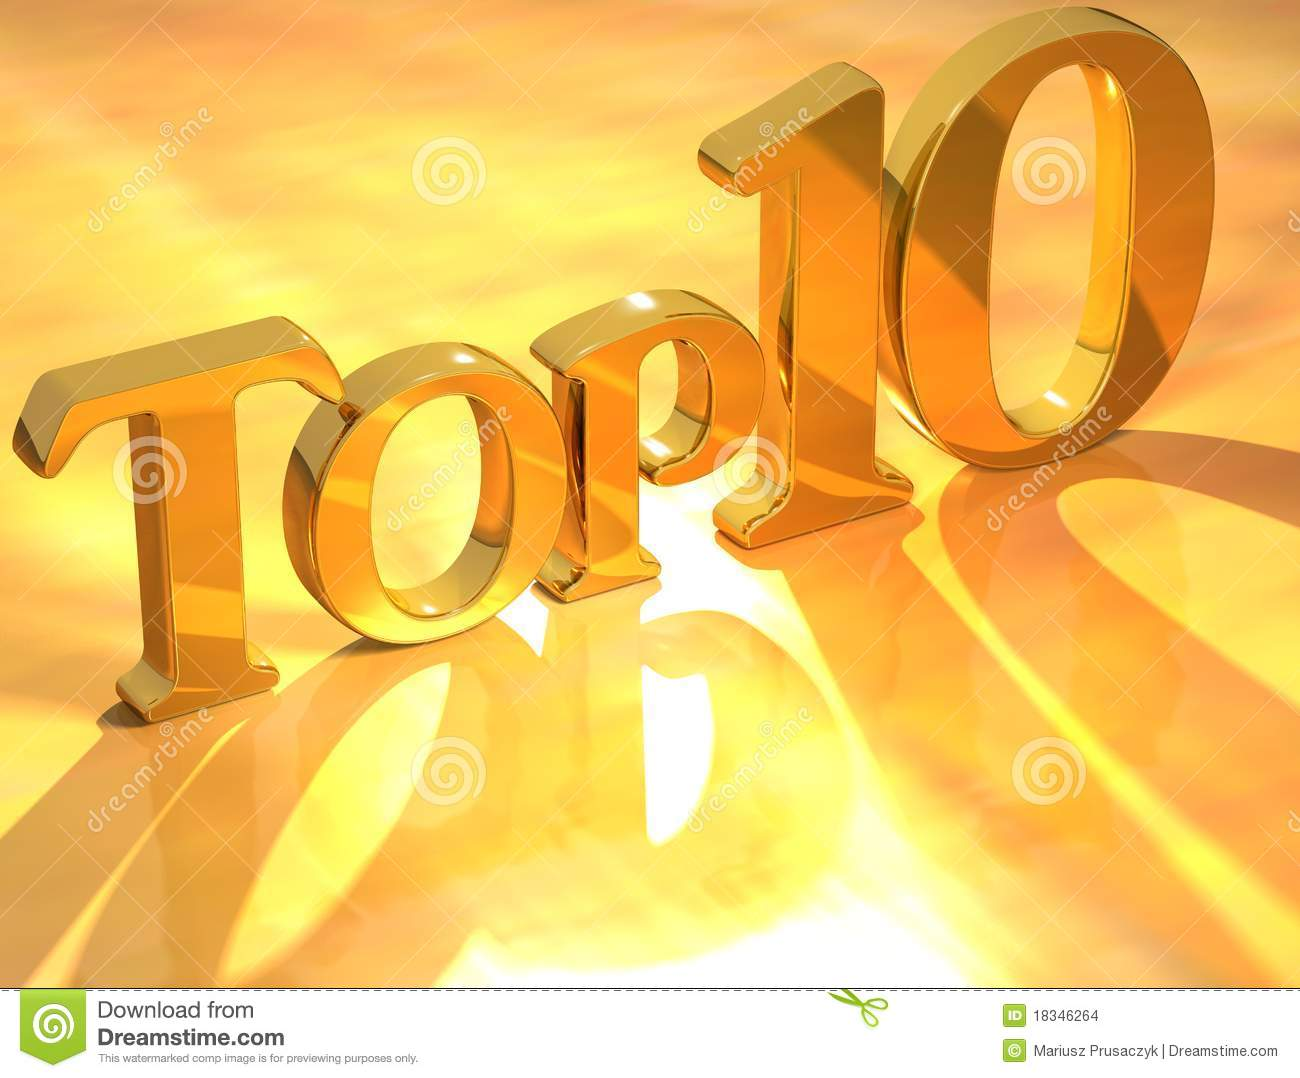 Top 10 Gold Text Stock Illustration. Image Of Letter